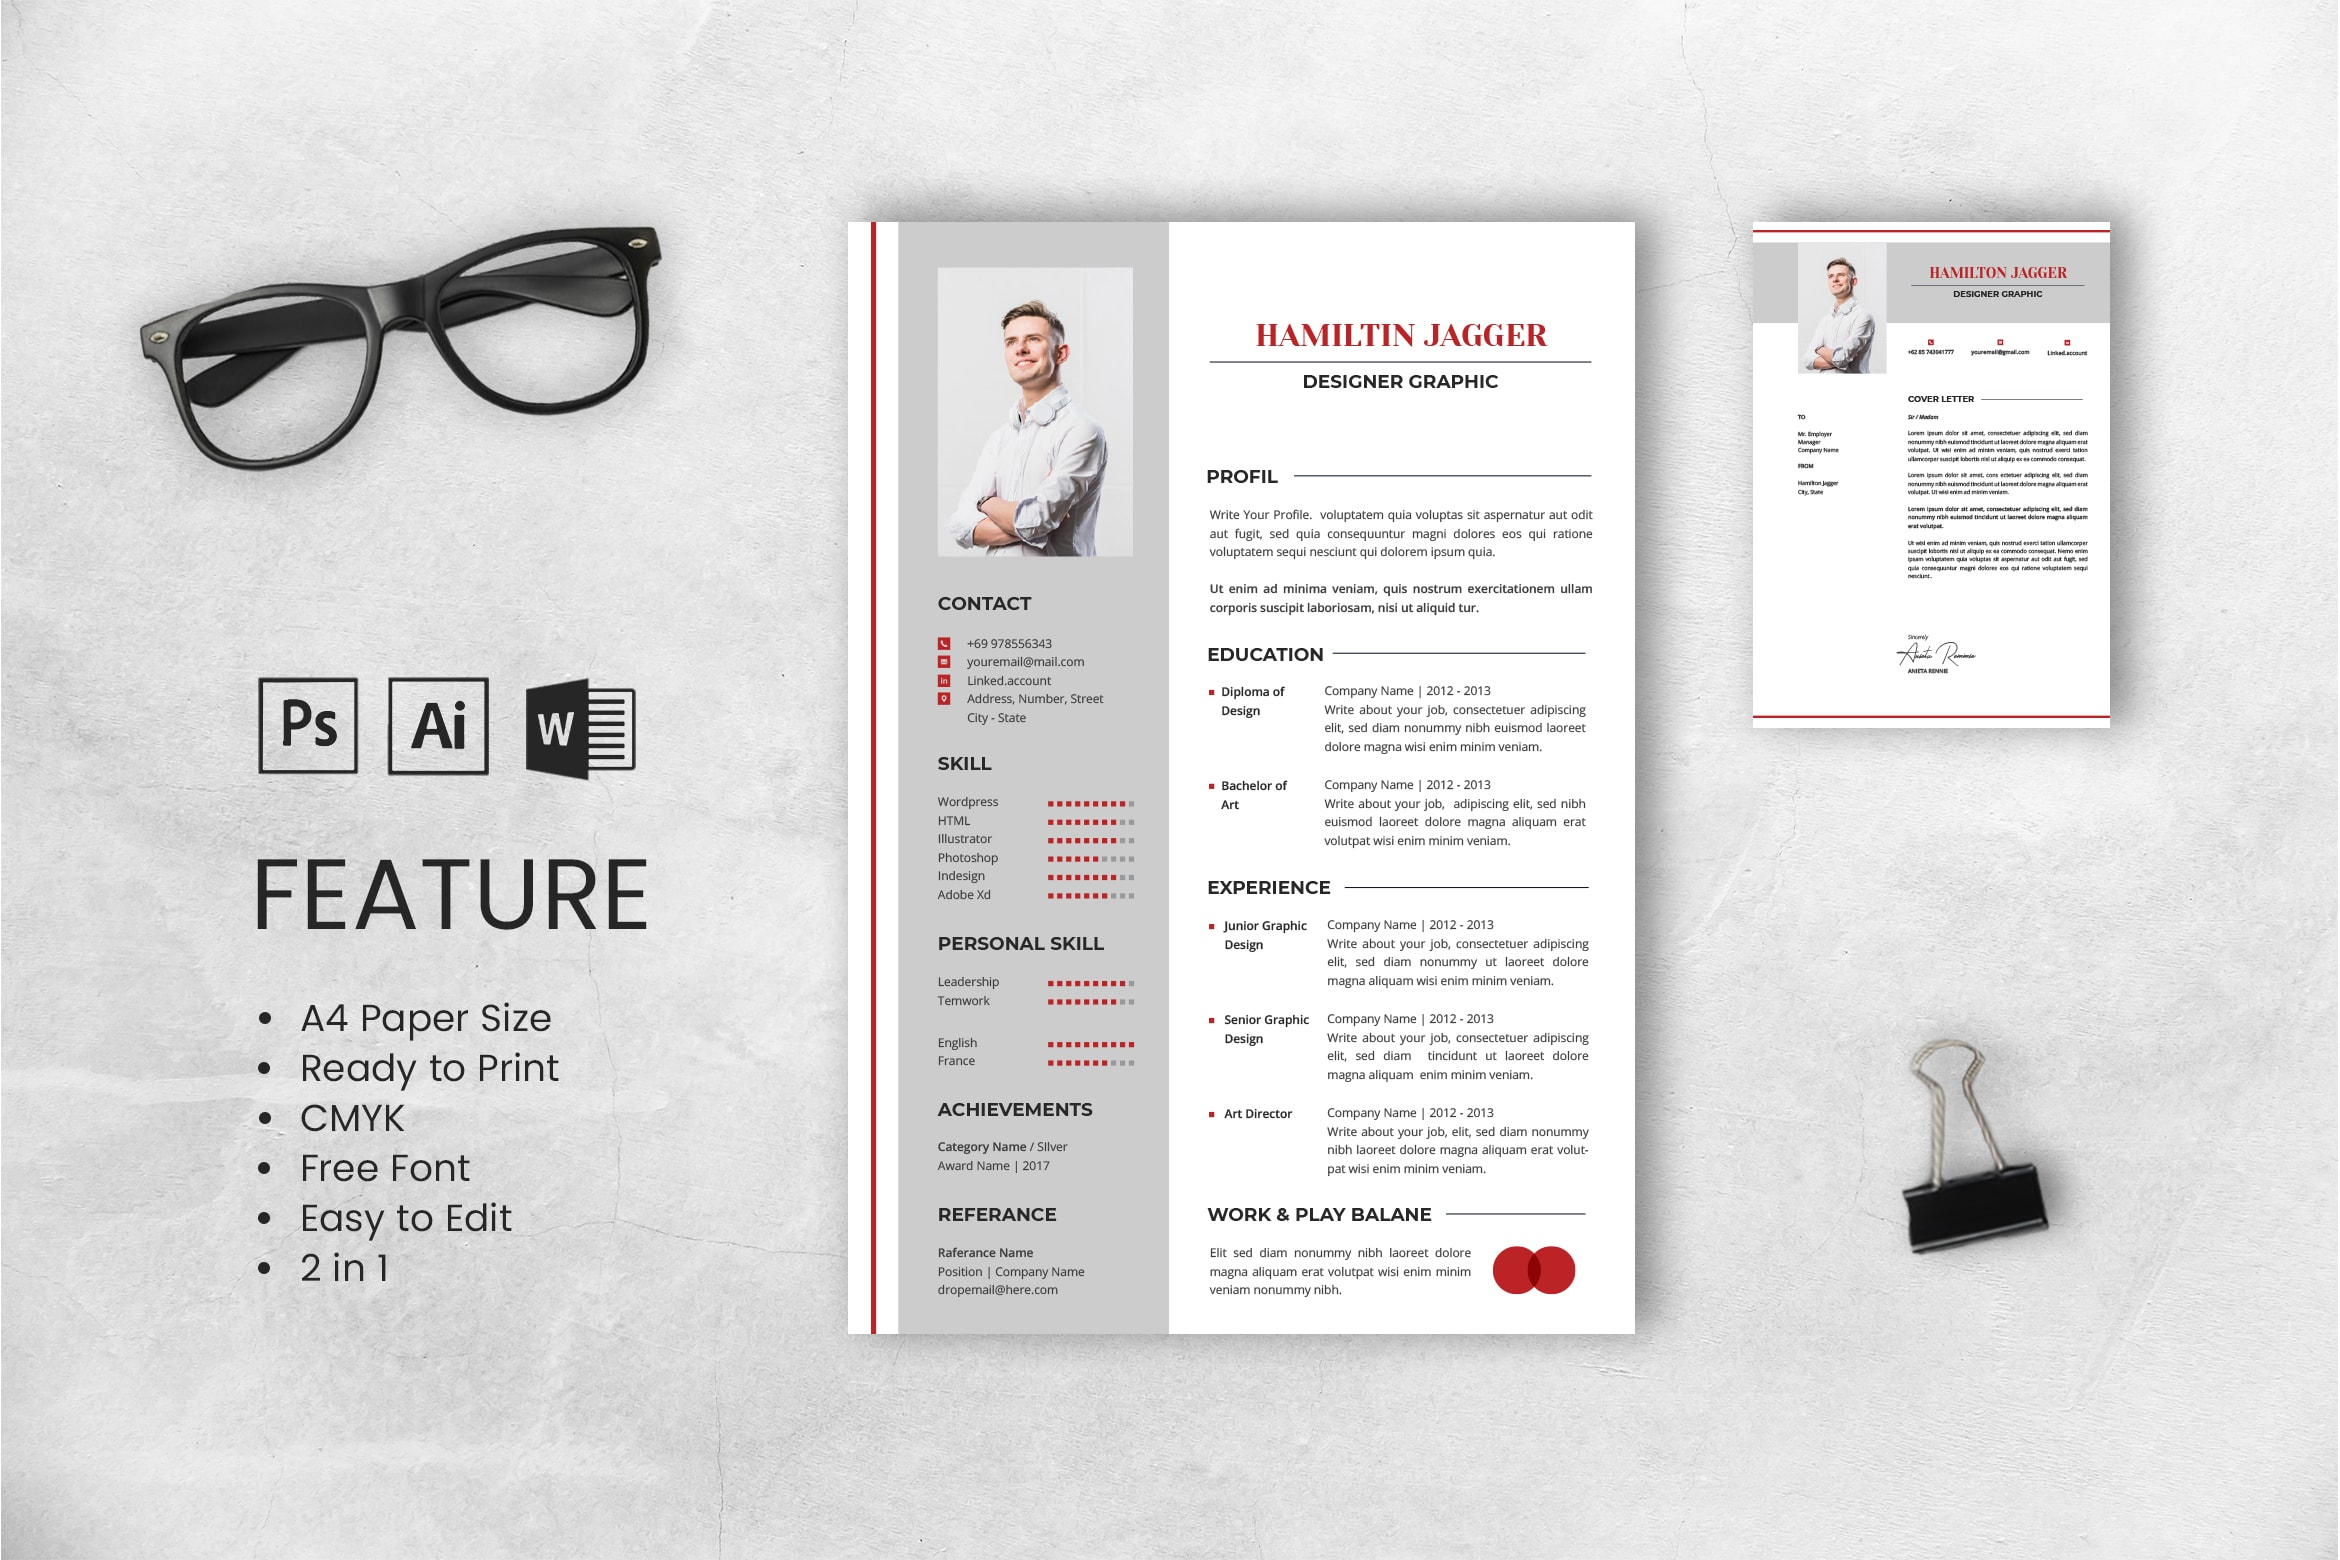 CV Resume – Graphic Designer Profile 6